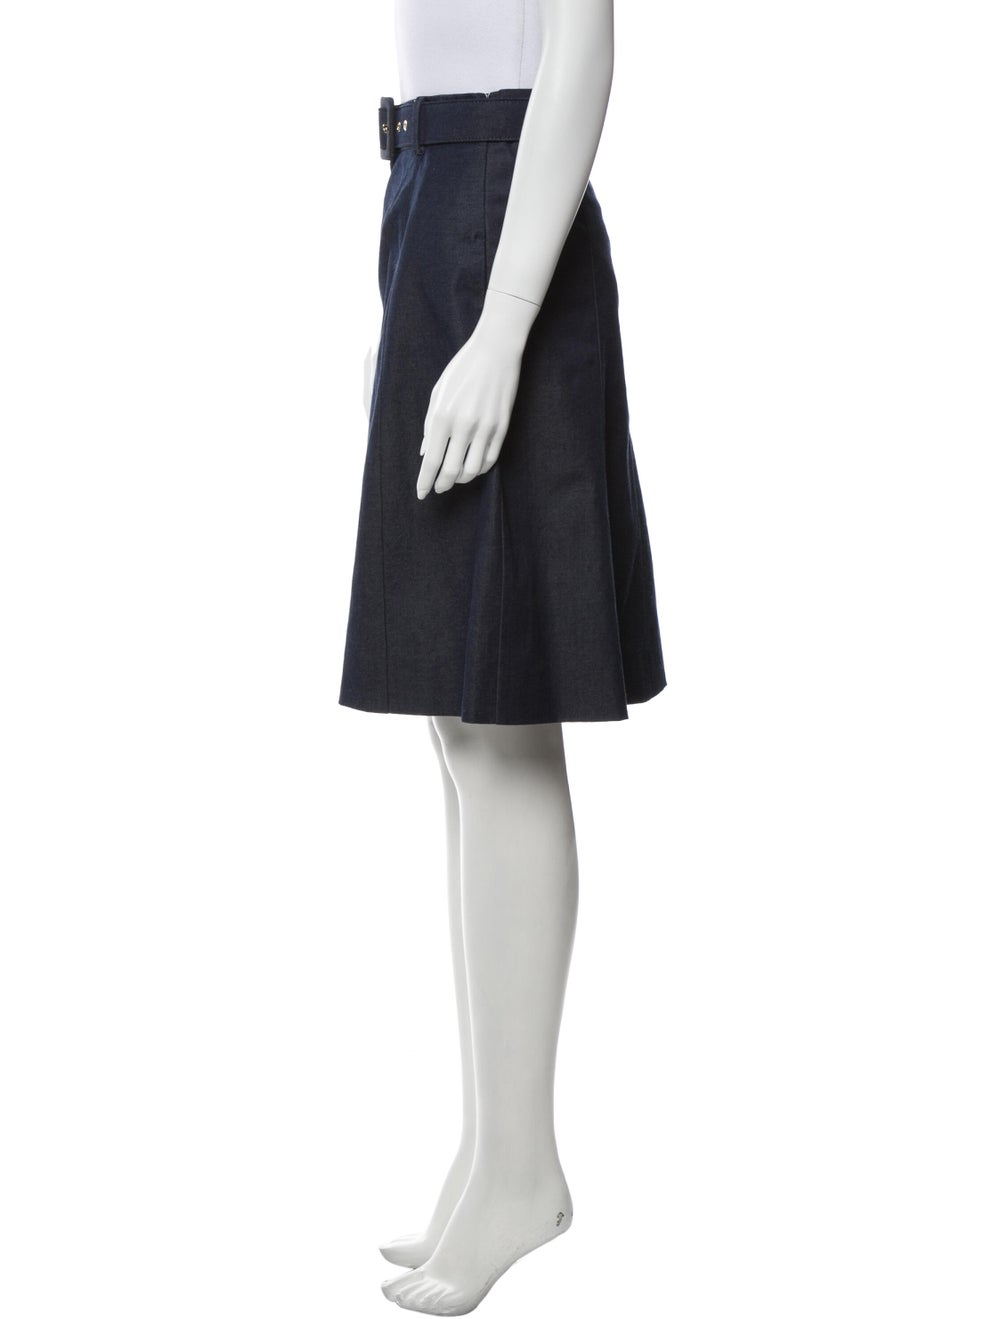 Moschino Cheap and Chic Knee-Length Skirt Blue - image 2